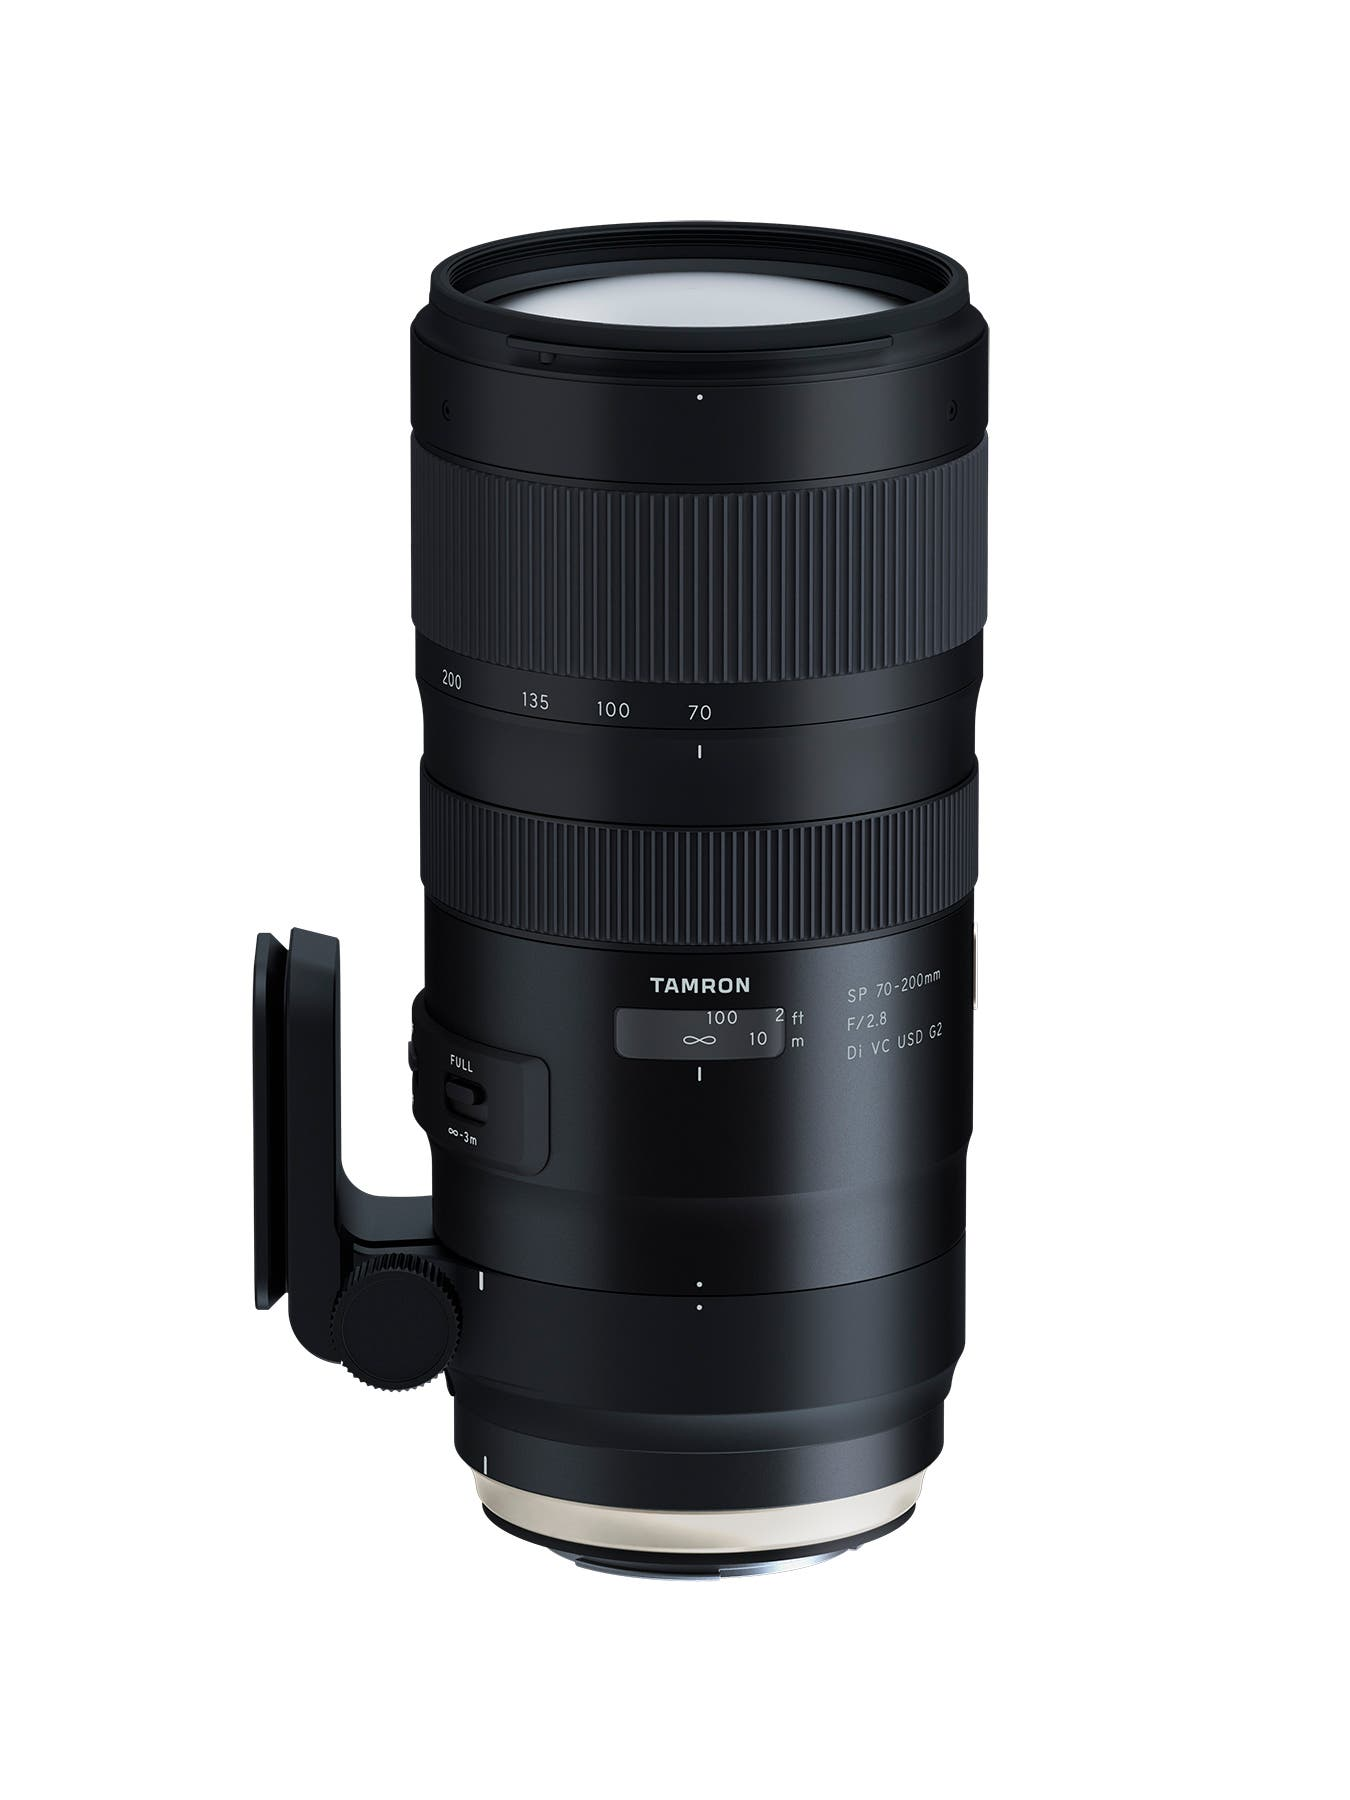 Tamron Launches New 70-200mm and 10-24mm at WPPI 2017